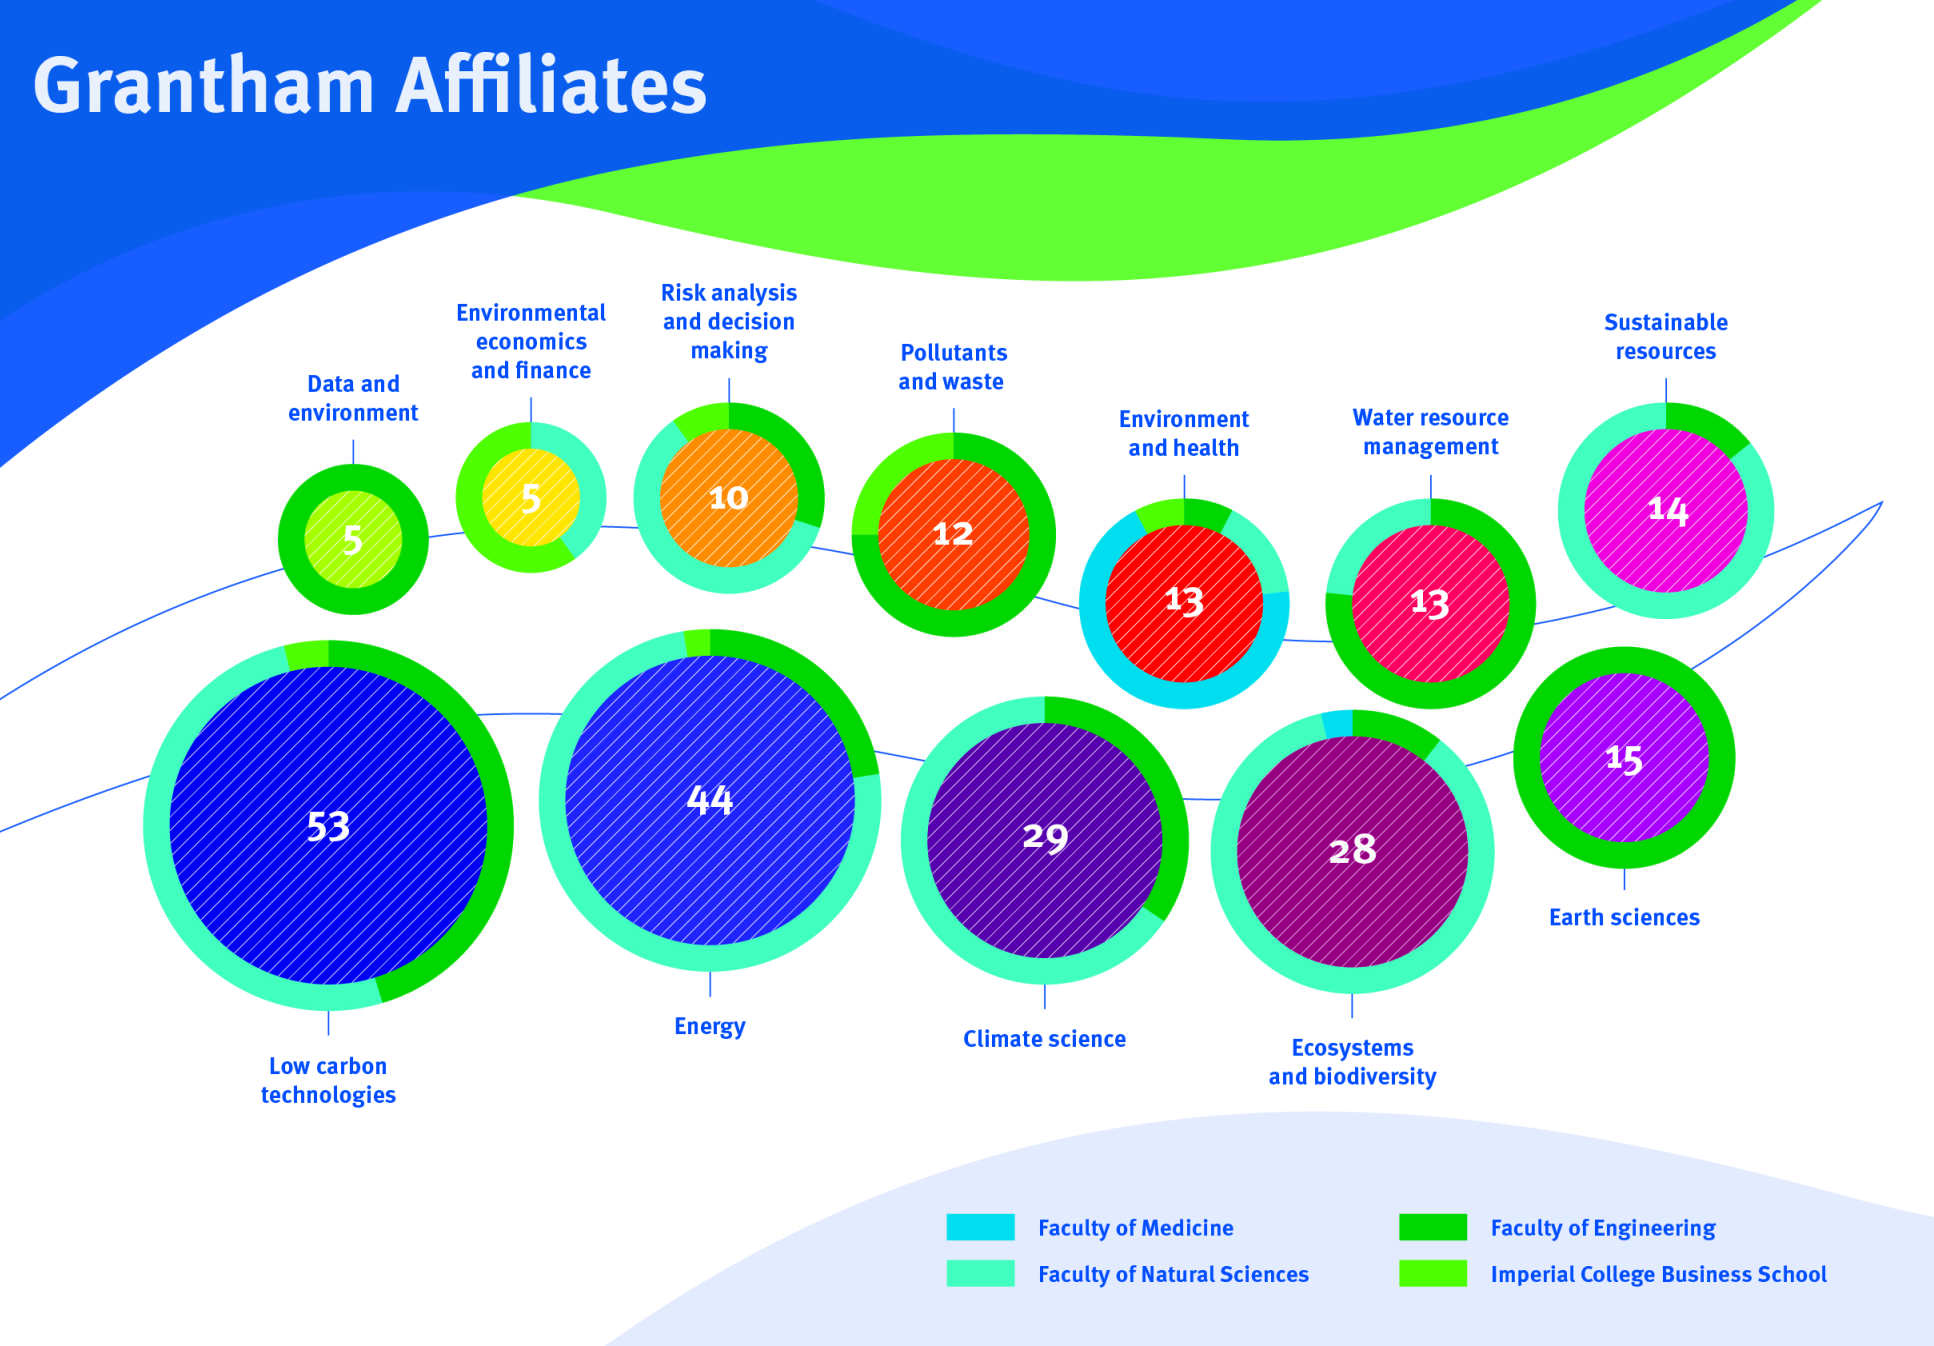 Bubble graphic showing number of affiliates in different disciplines